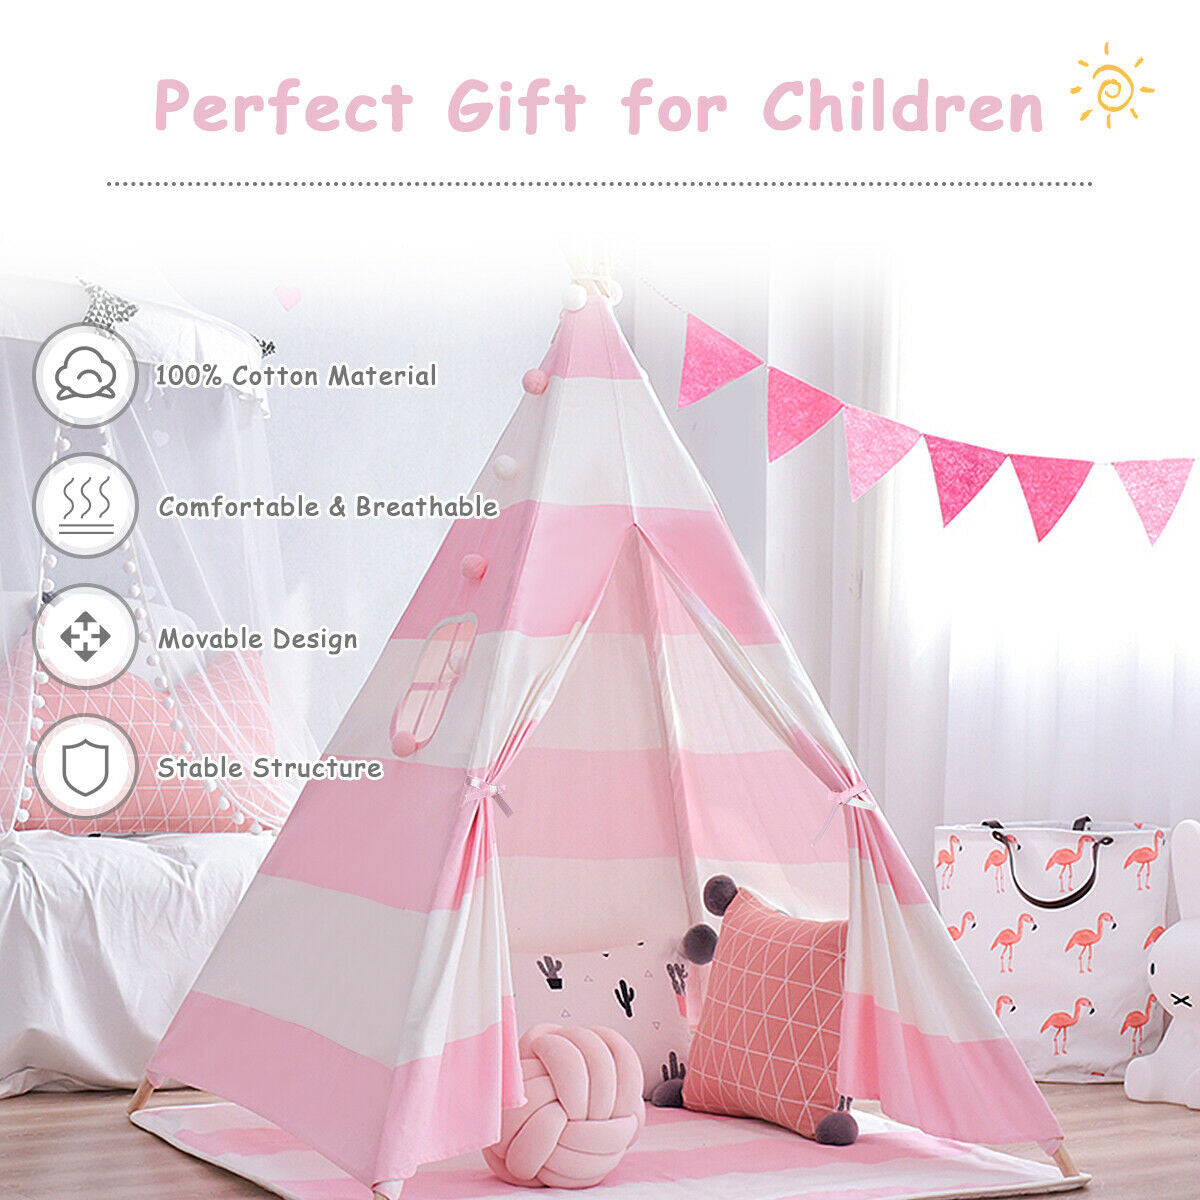 safe sturdy tent for kids play tent for children indoor outdoor